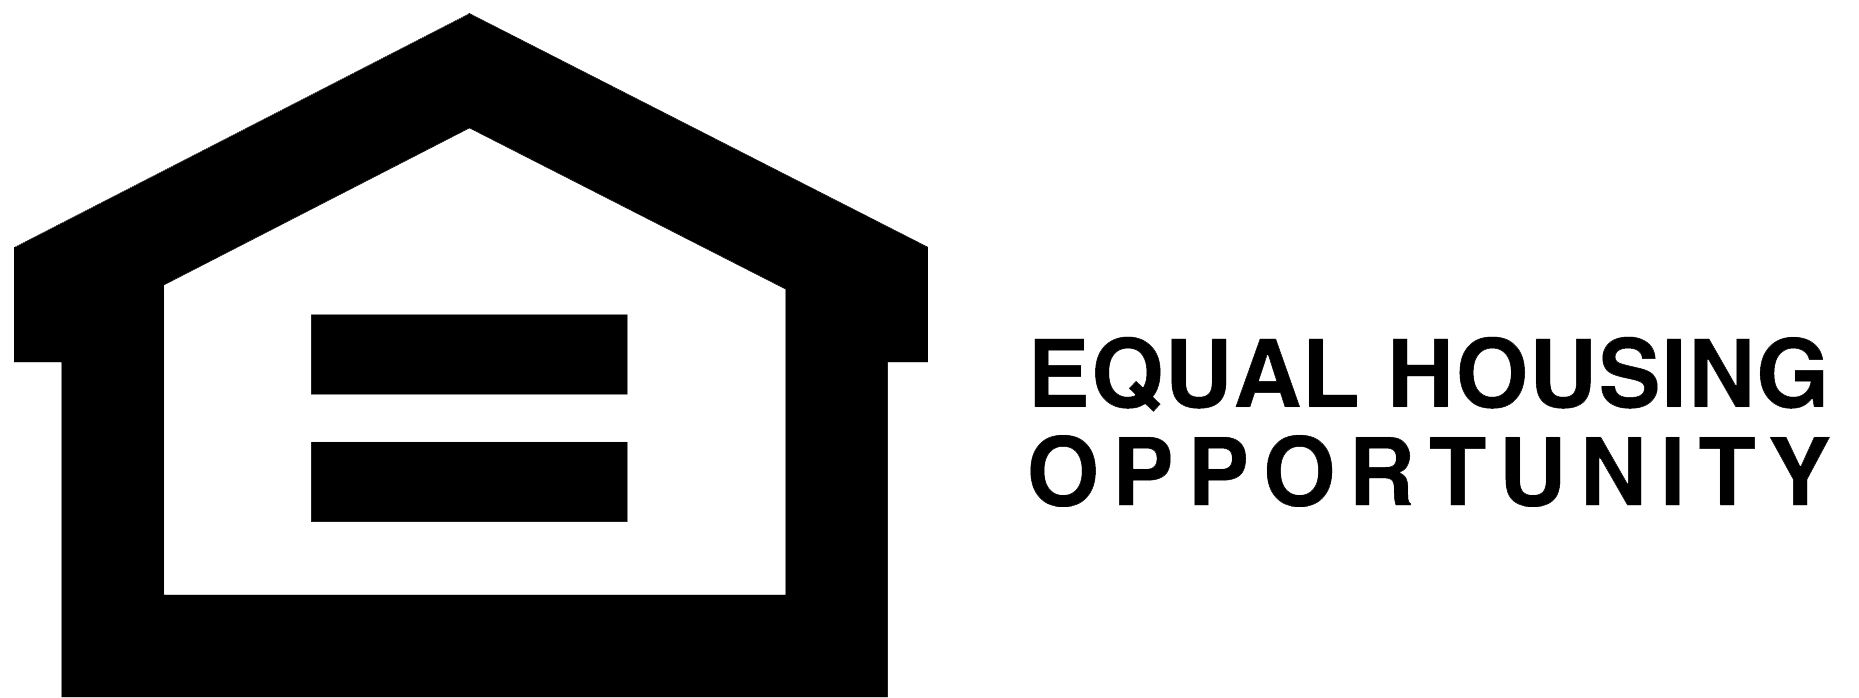 Equal Housing Opportunity Logo - Equal Housing Logo, Equal Housing Symbol, Meaning, History and Evolution